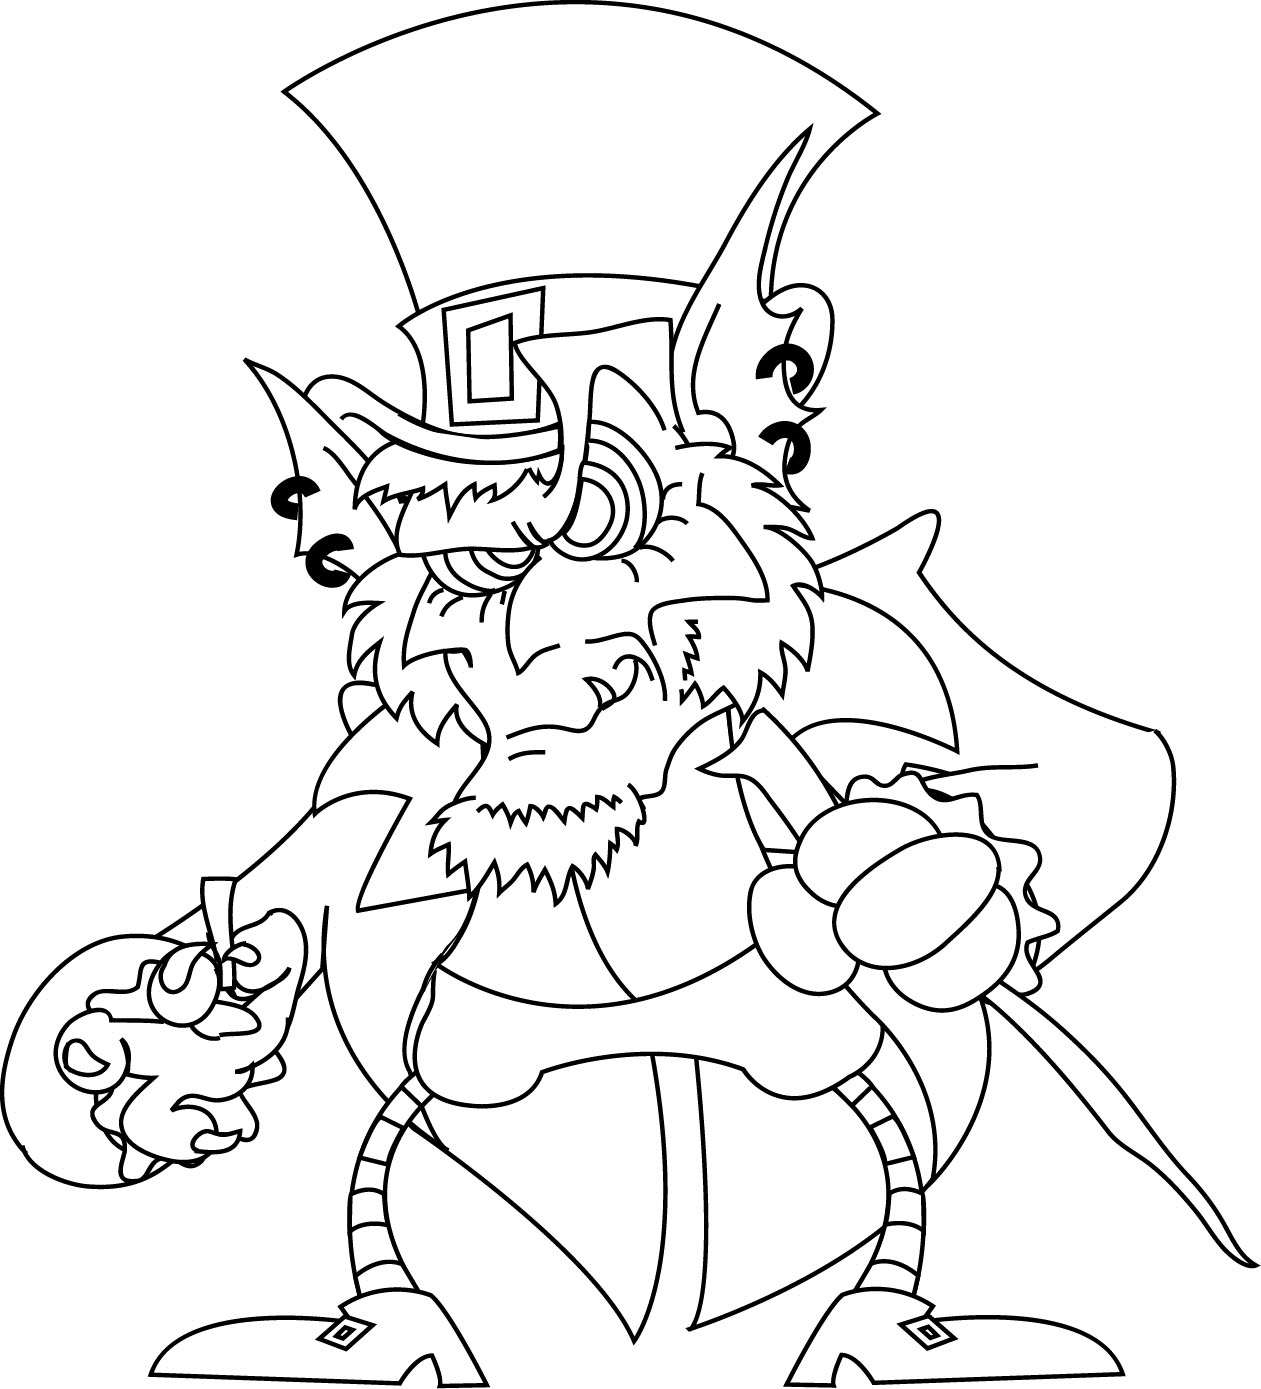 Printable Nutcracker Coloring Pages Coloring Me Free Nutcracker Coloring Pages